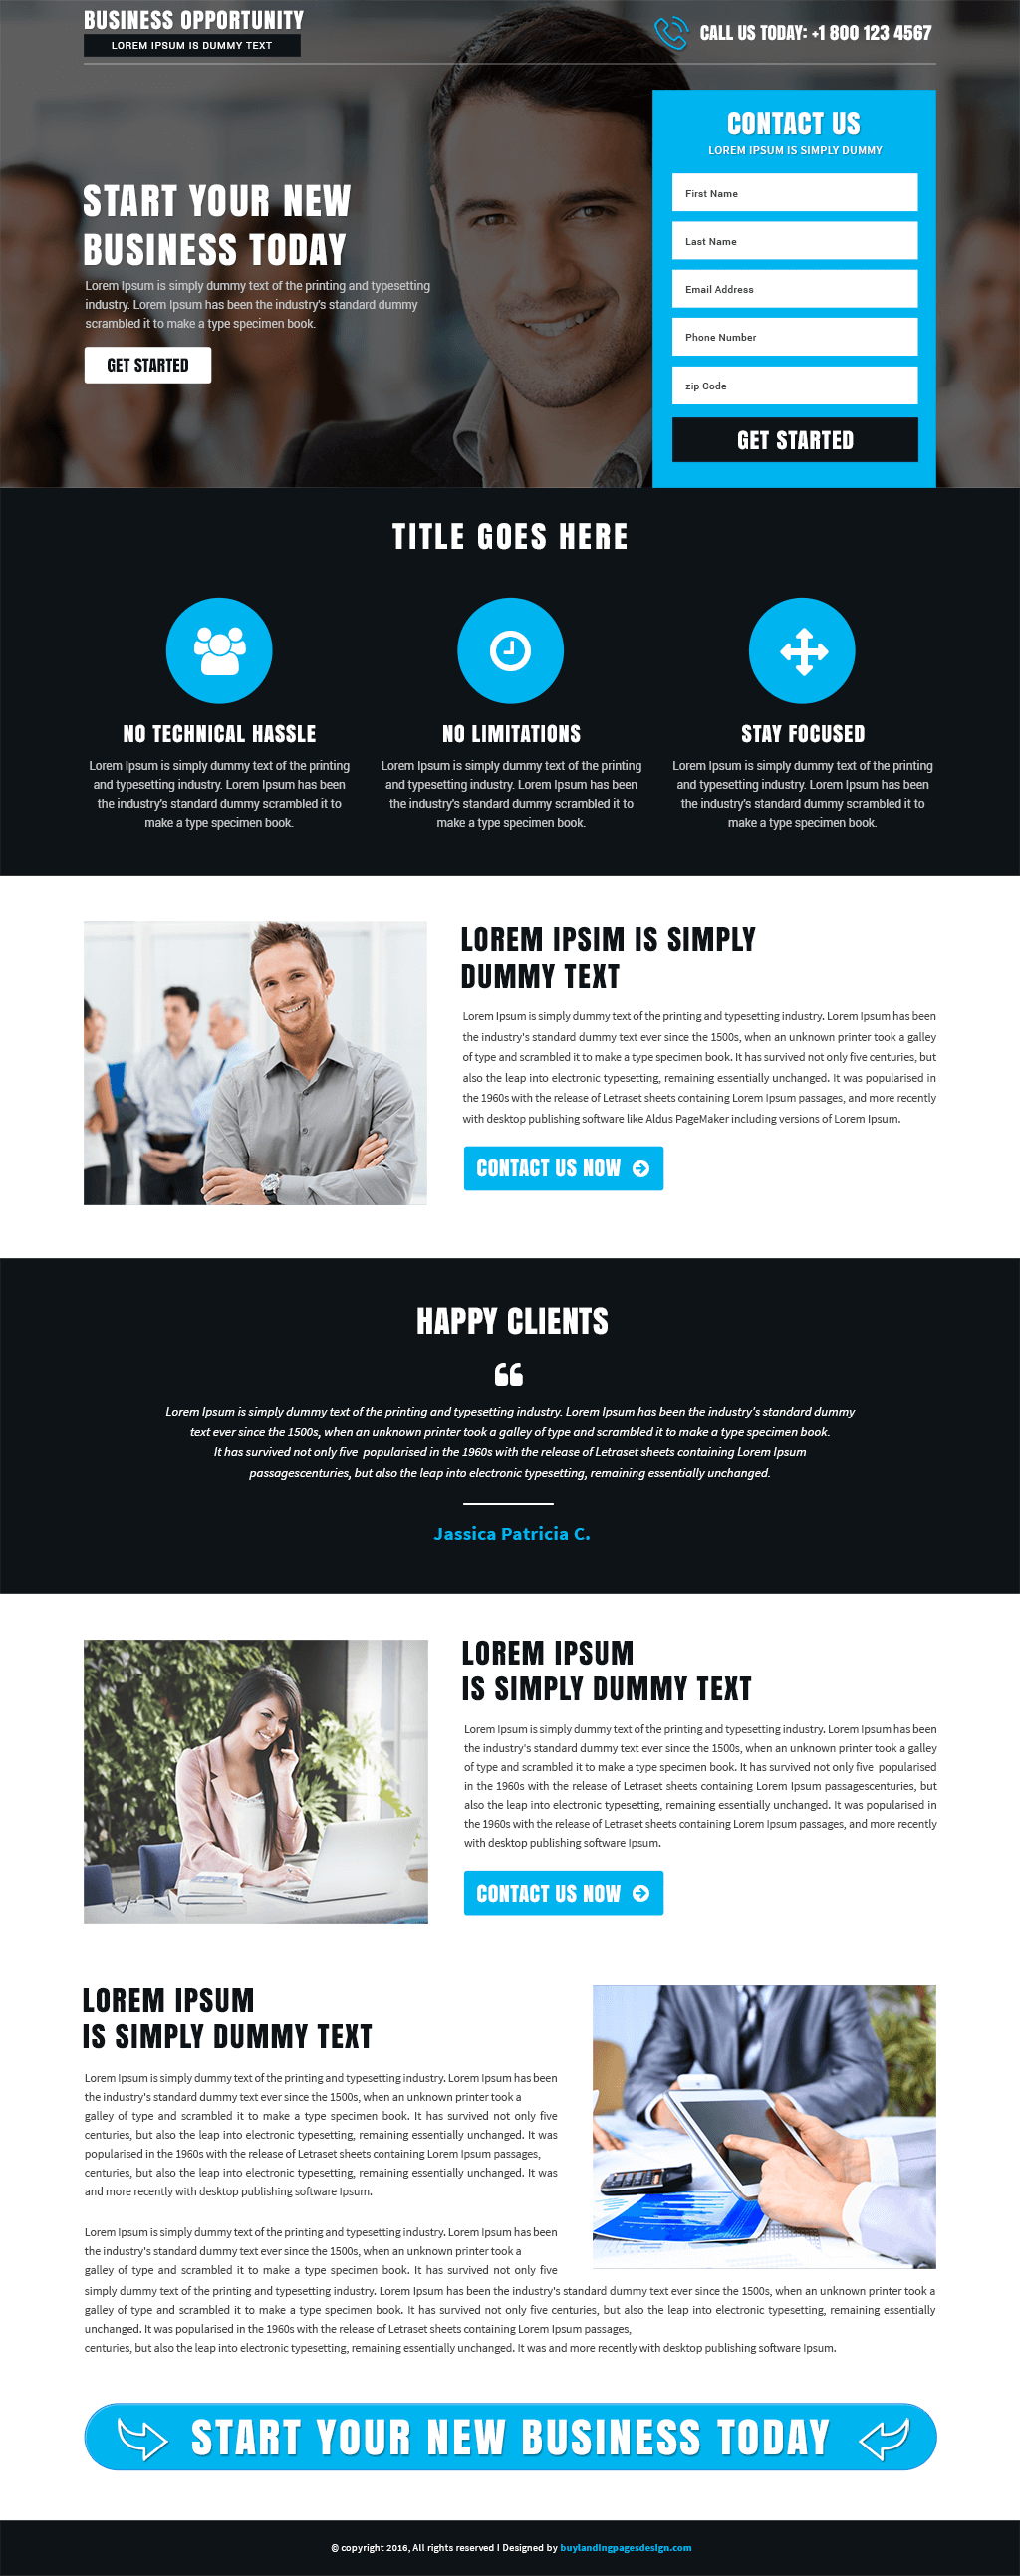 Business Opportunity responsive landing page template